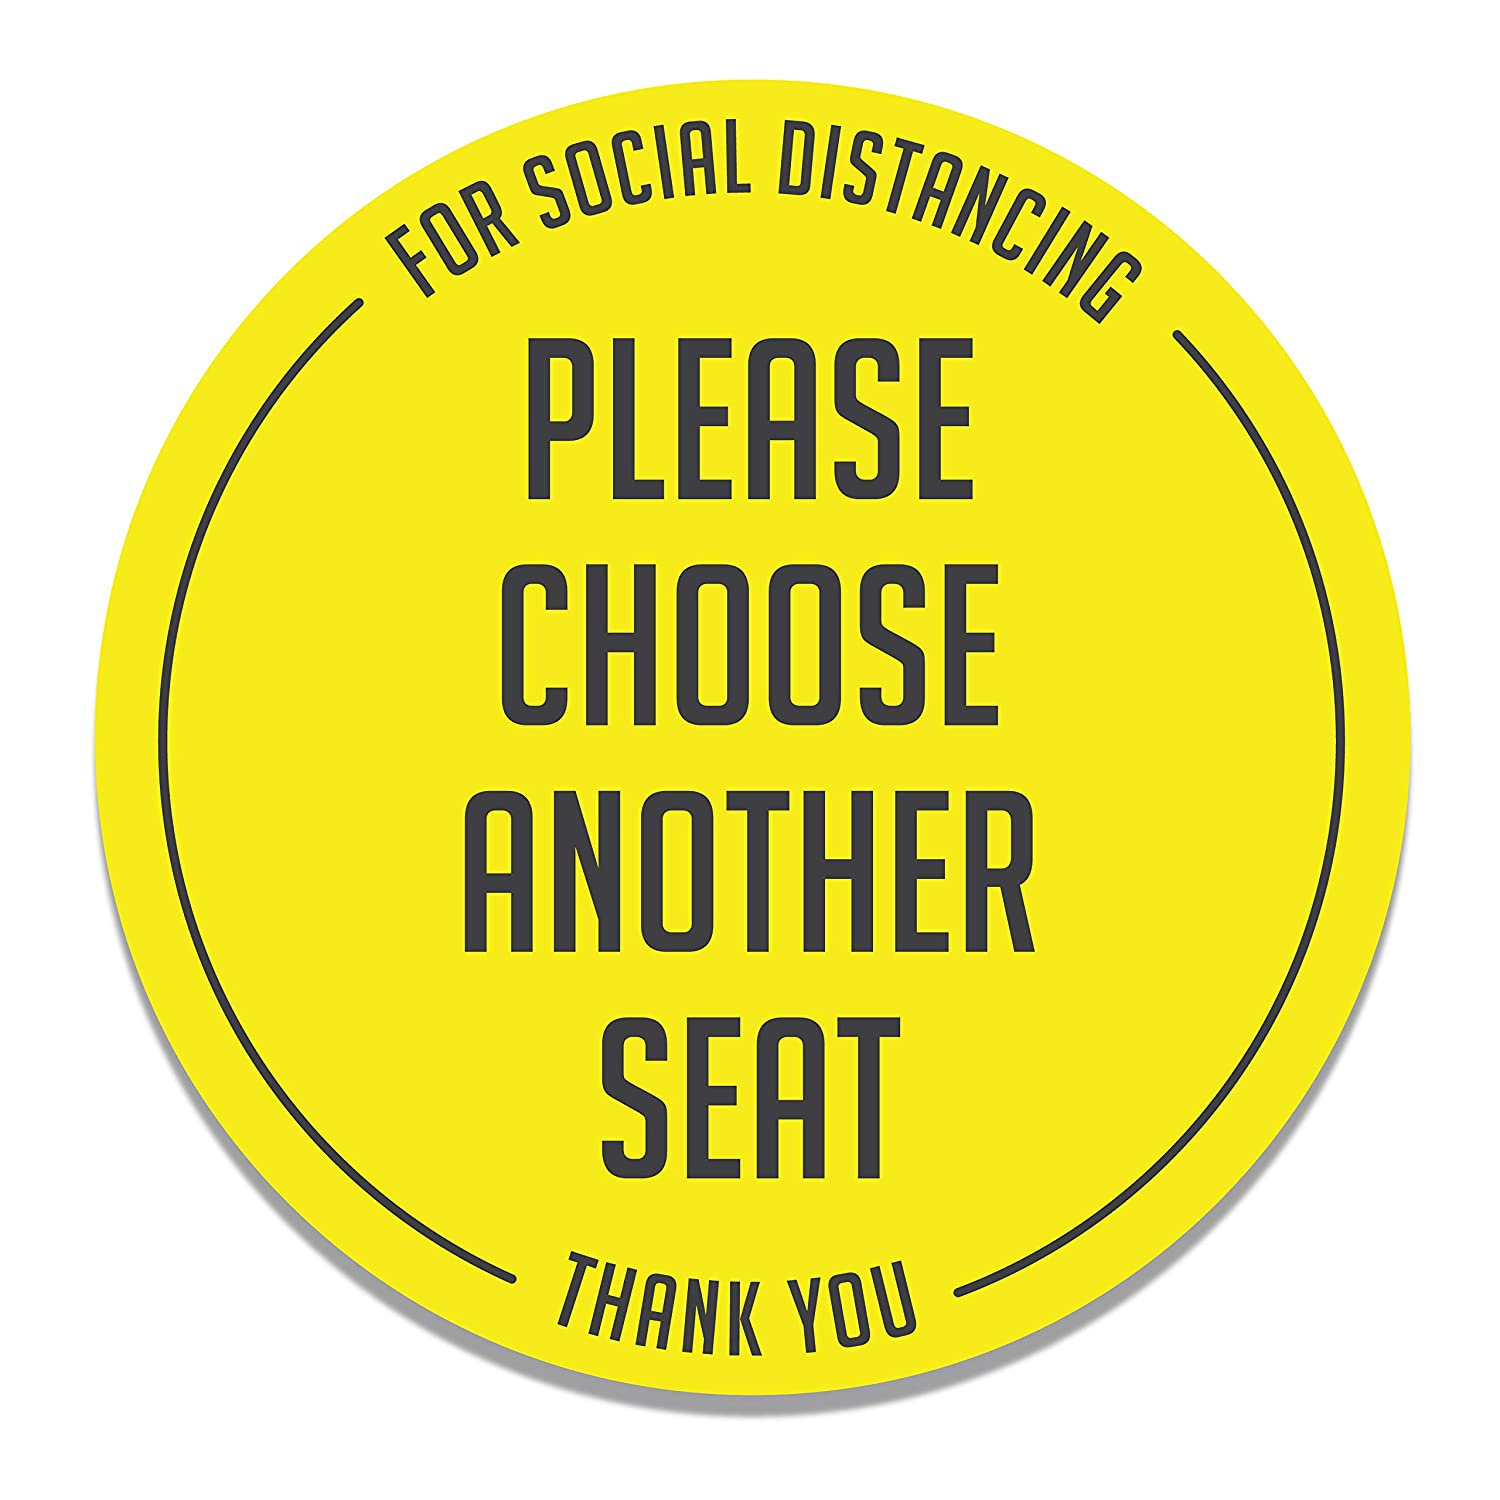 20 Pack Do Not Sit Here Sign 4 INCH Seat Sticker Social Distancing Social Distancing Decals